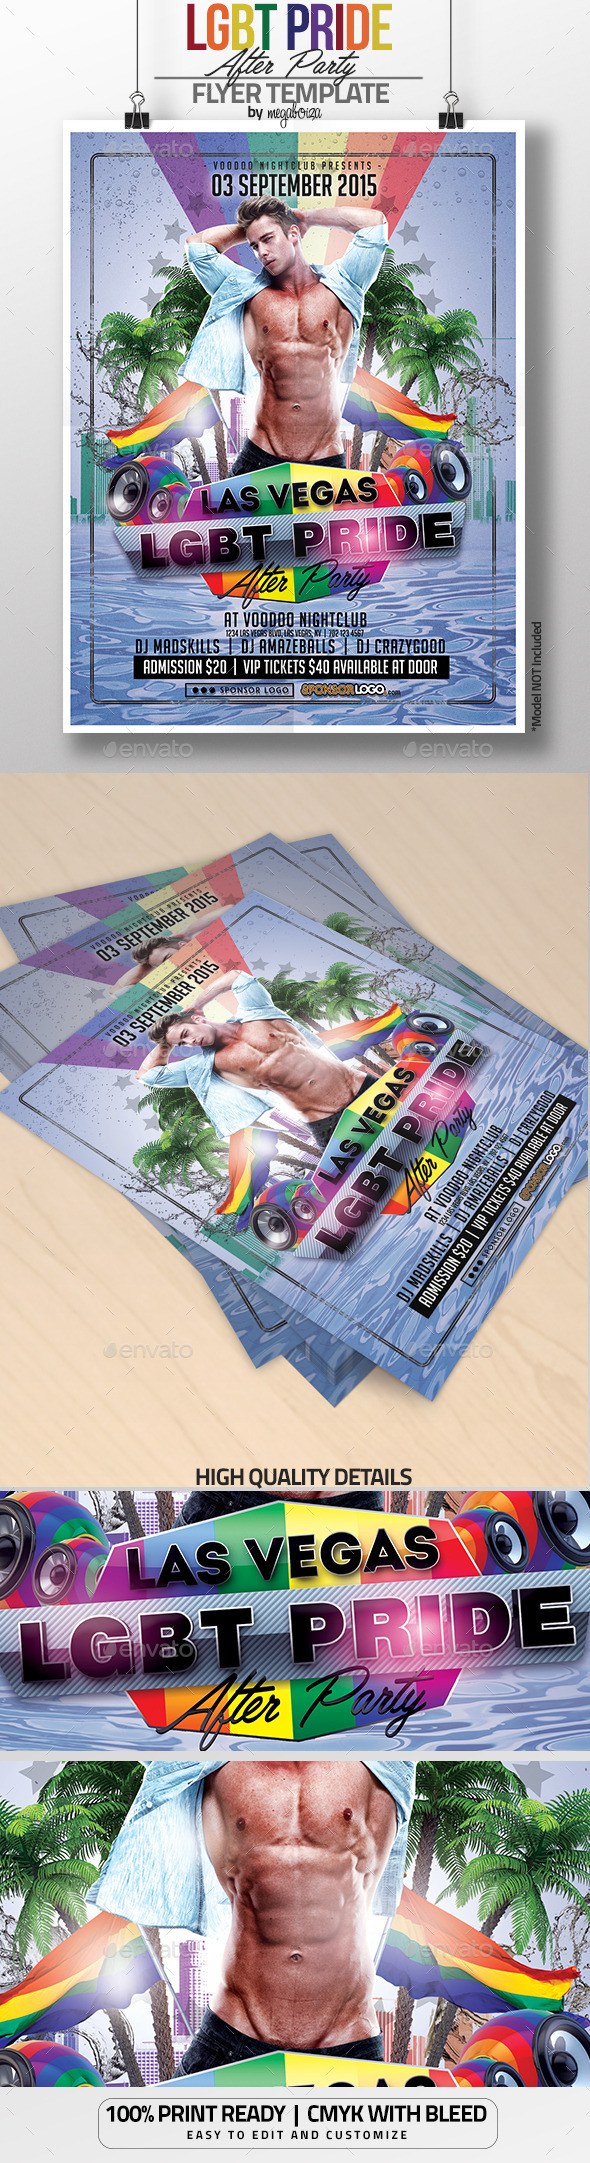 LGBT Pride After Party Flyer / Poster Template - Clubs & Parties Events